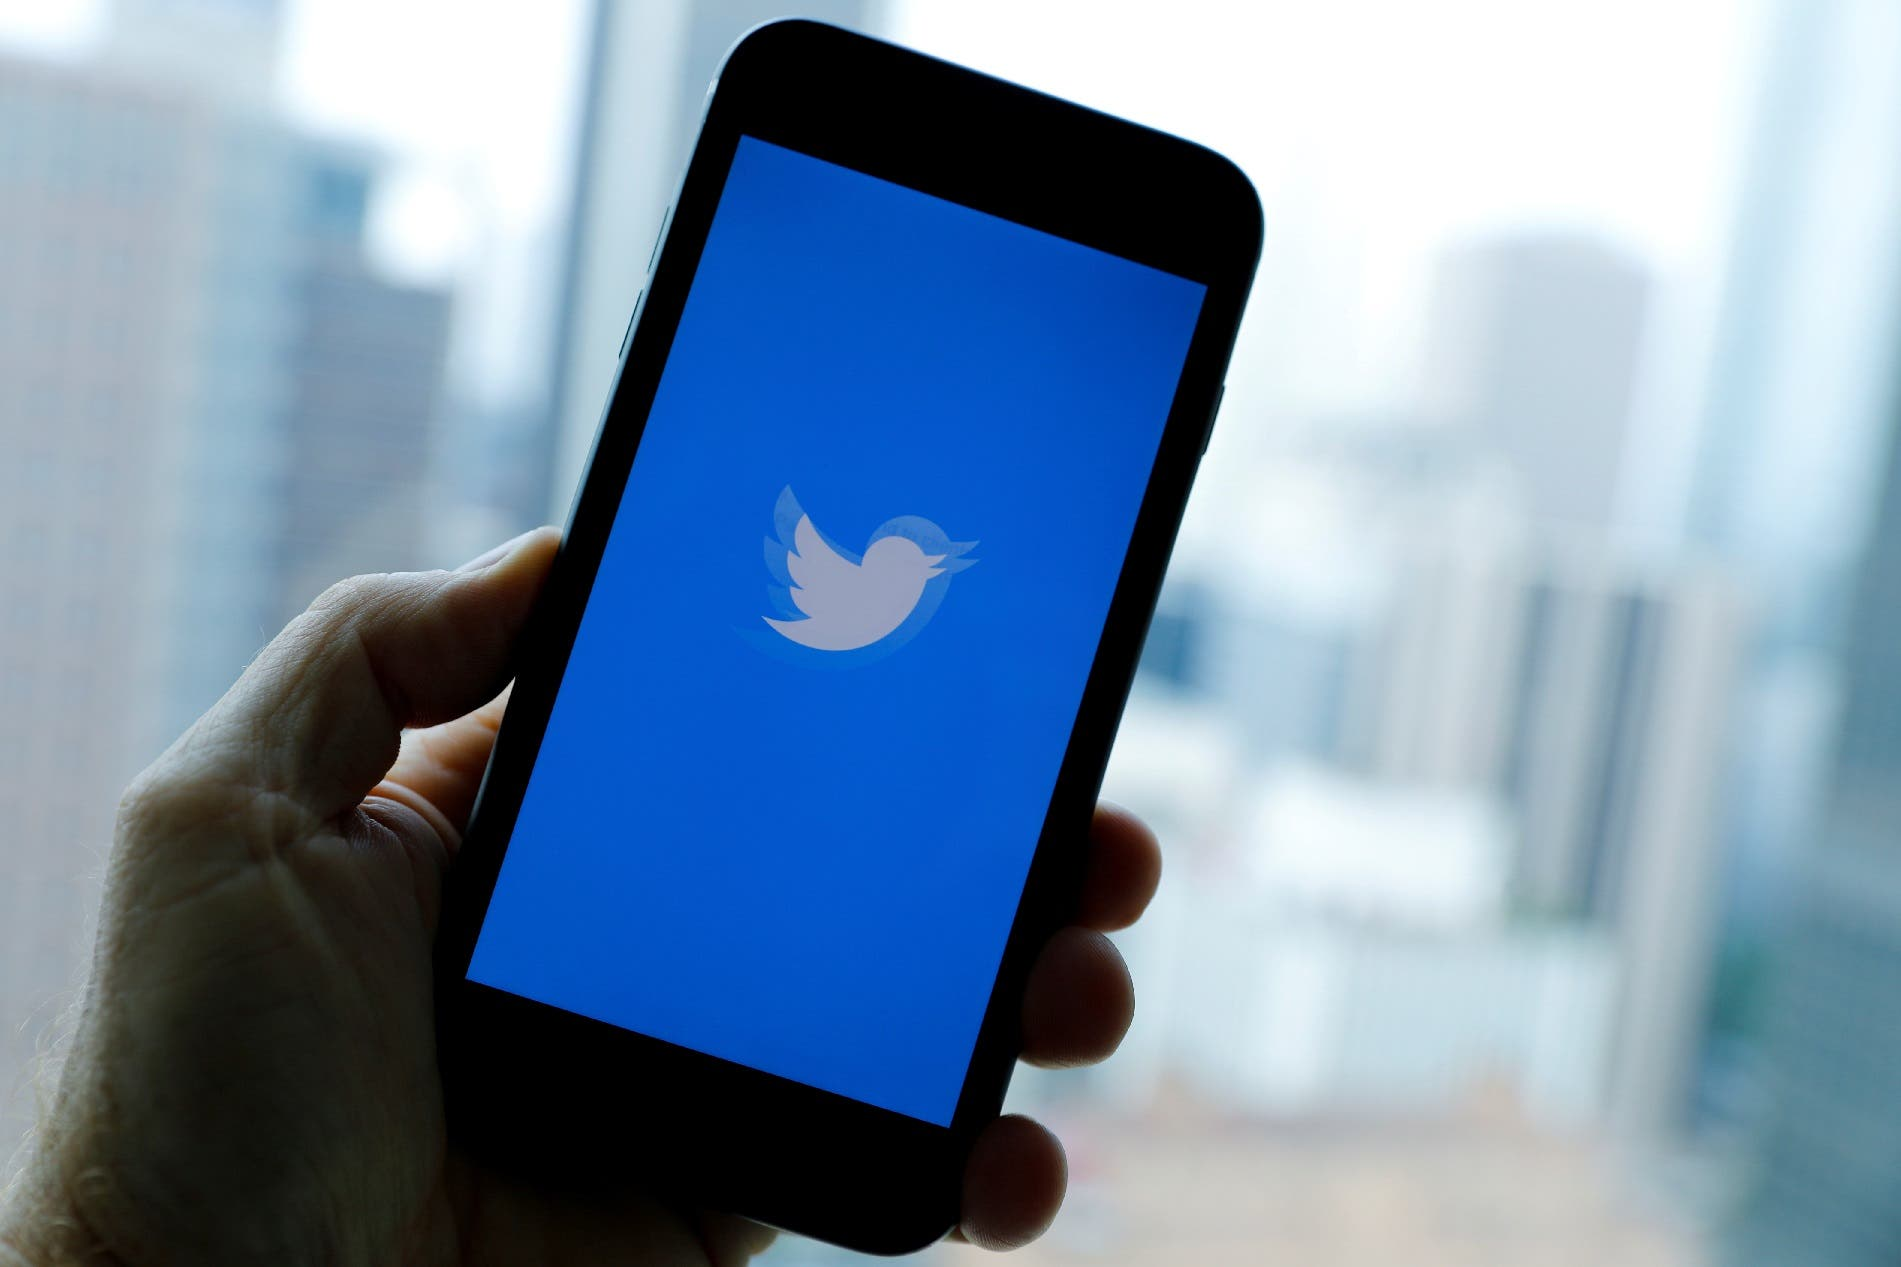 The Twitter logo is dispayed on a phone screen in an illustration. (File photo: Reuters)